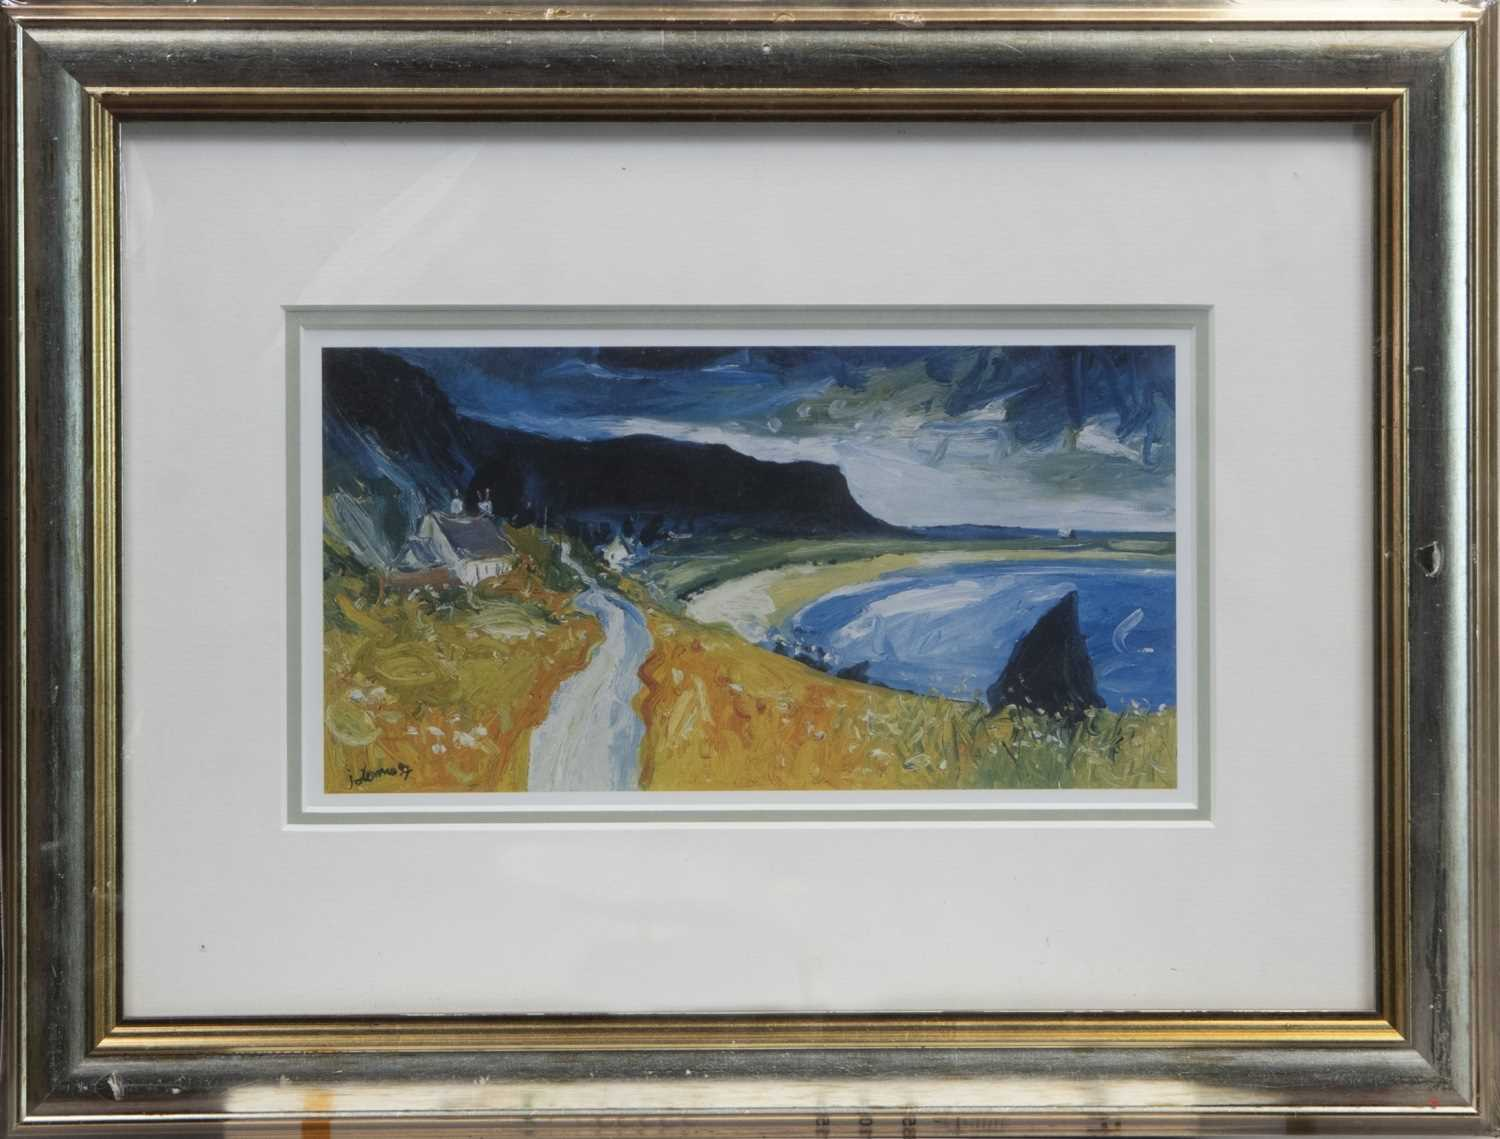 Lot 107 - YELLOW BEACH, A JOLOMO PRINT